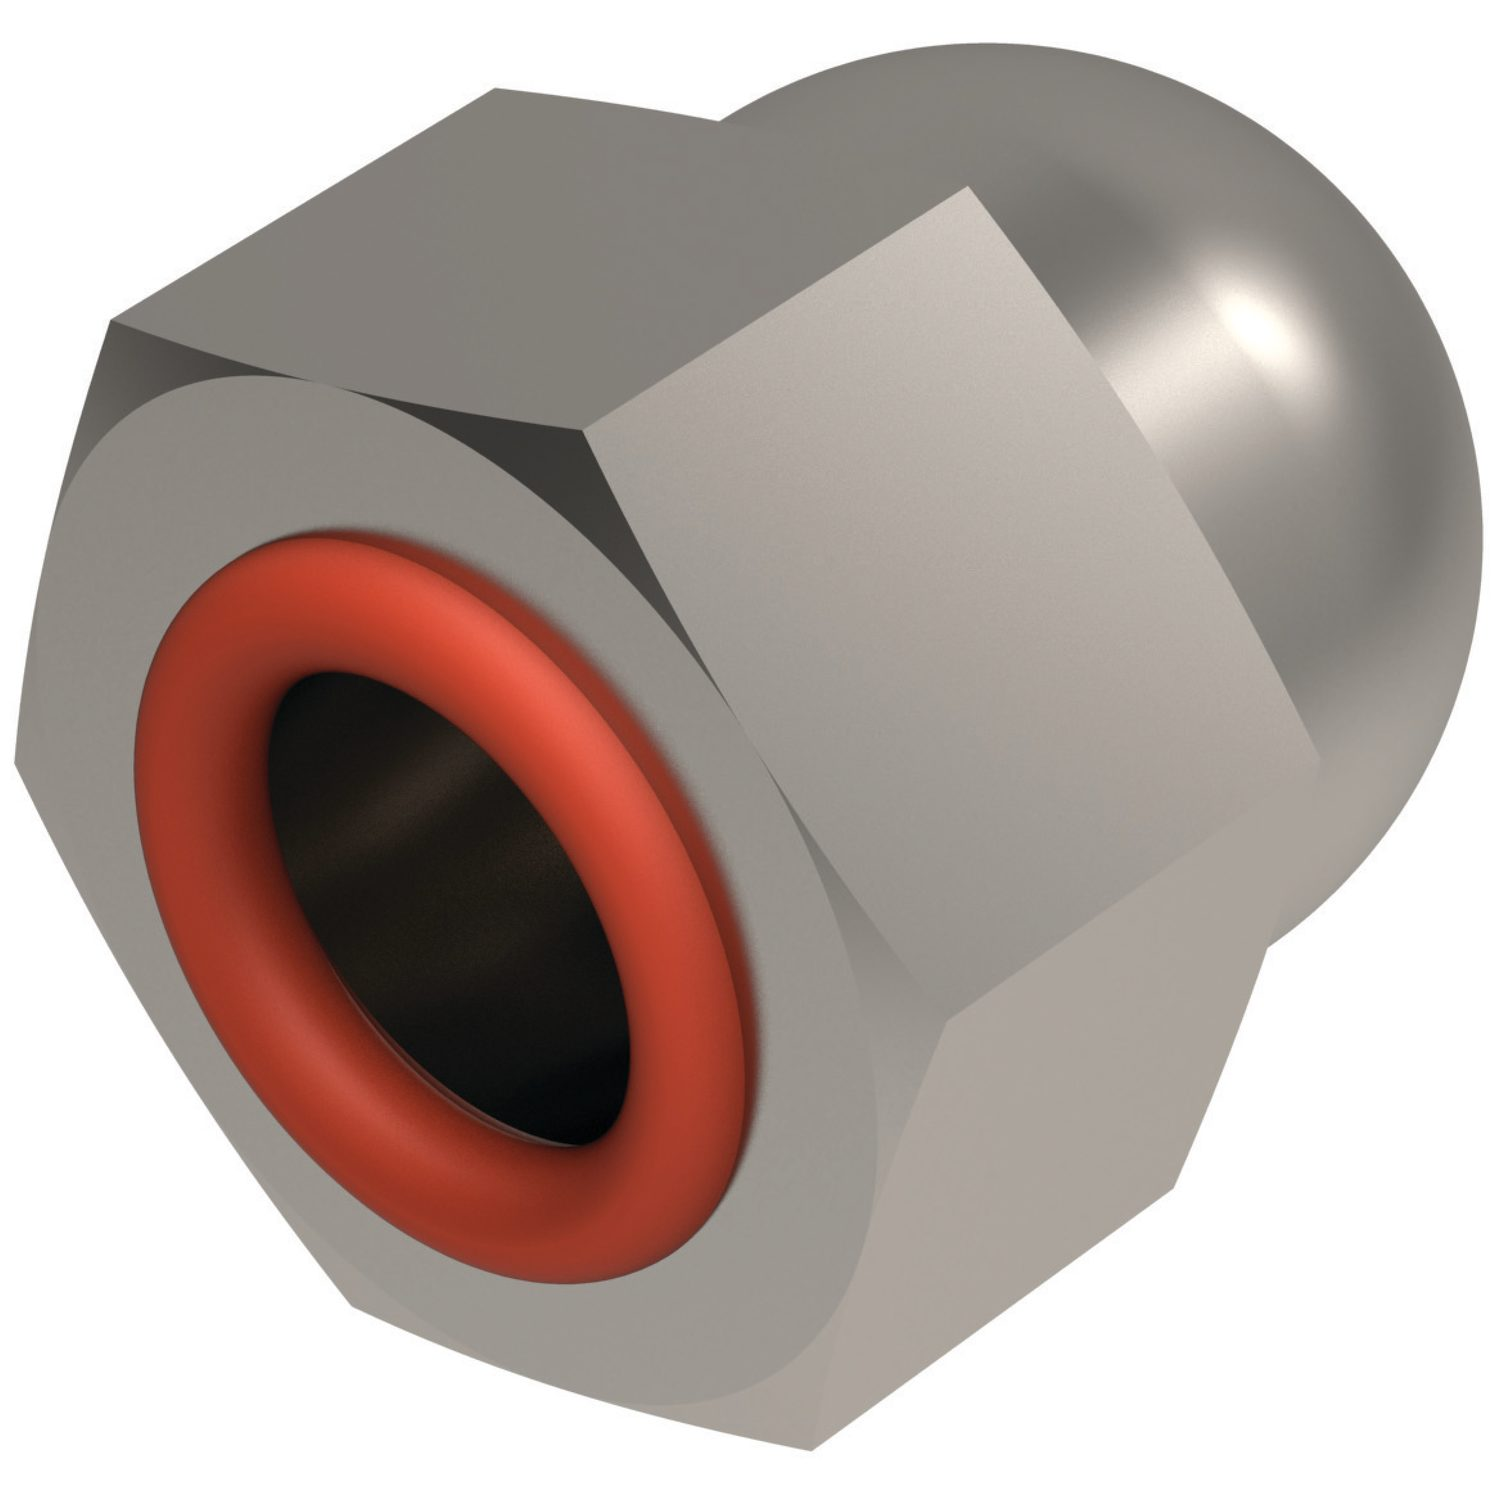 P0179 Integral Seal Domed Nuts